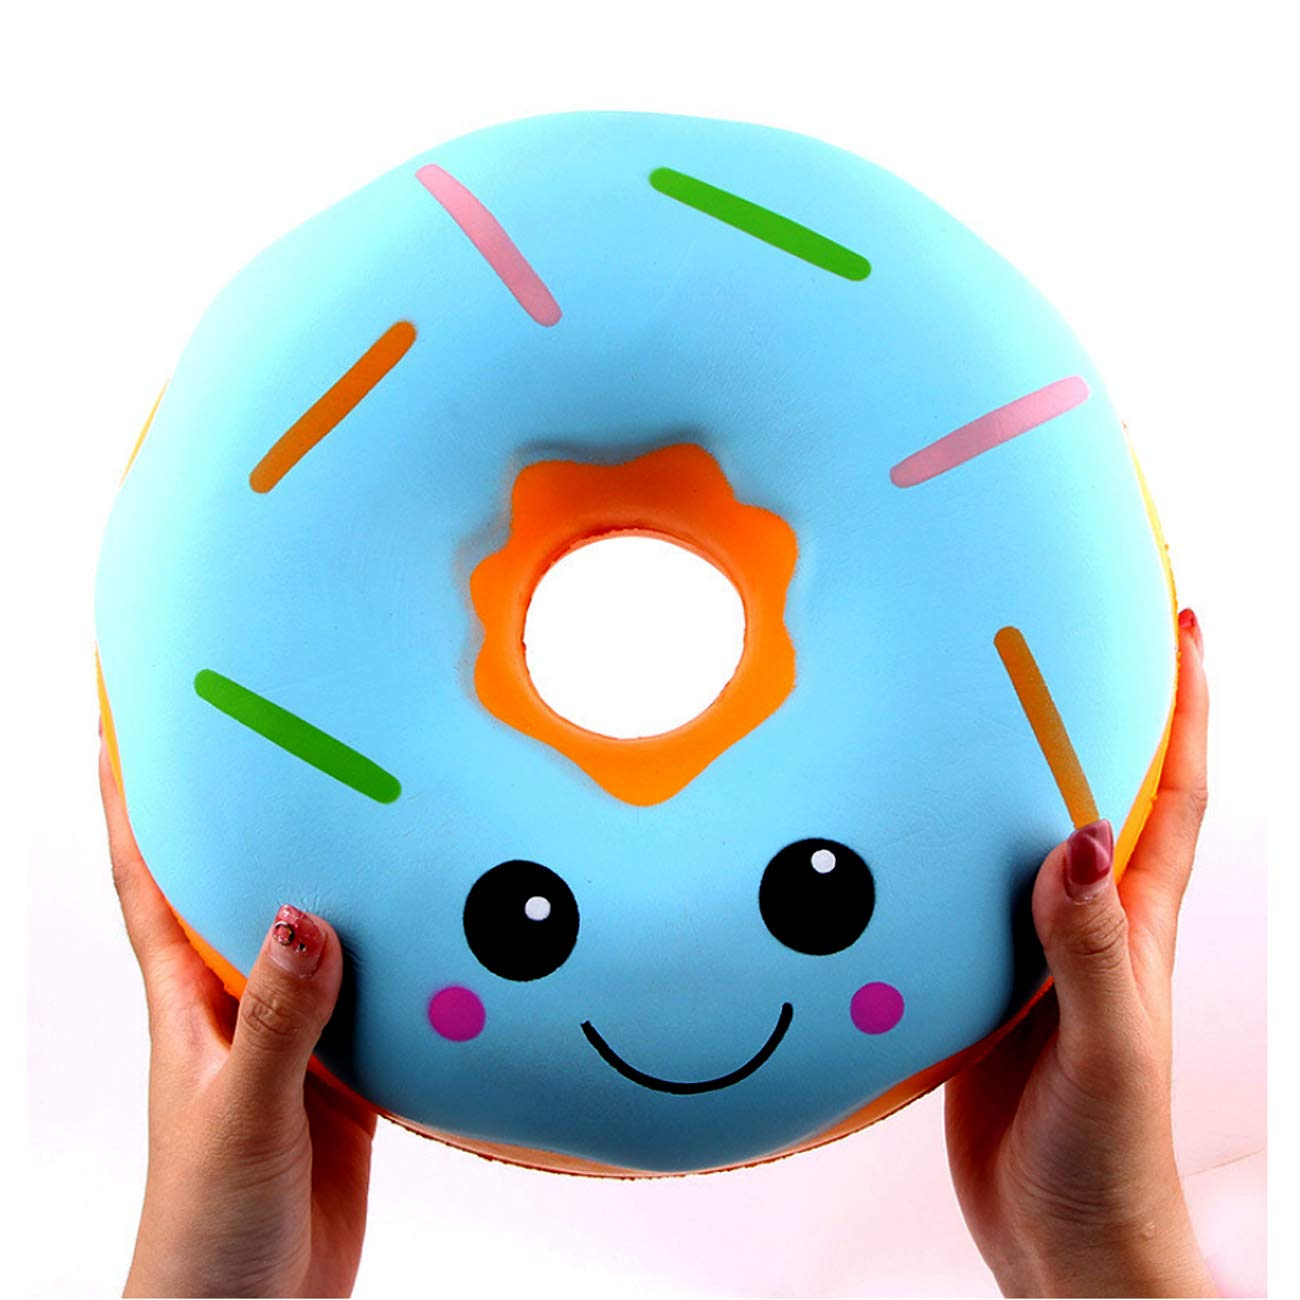 ACCOCO 10'' Inch Large Slow Rising Squishy Toys, Giant Donut Jumbo Slow Rising Scented Super Soft Squeeze Squishy Food Toys Stress Relief Gift Collection (Blue Donut) by ACCOCO